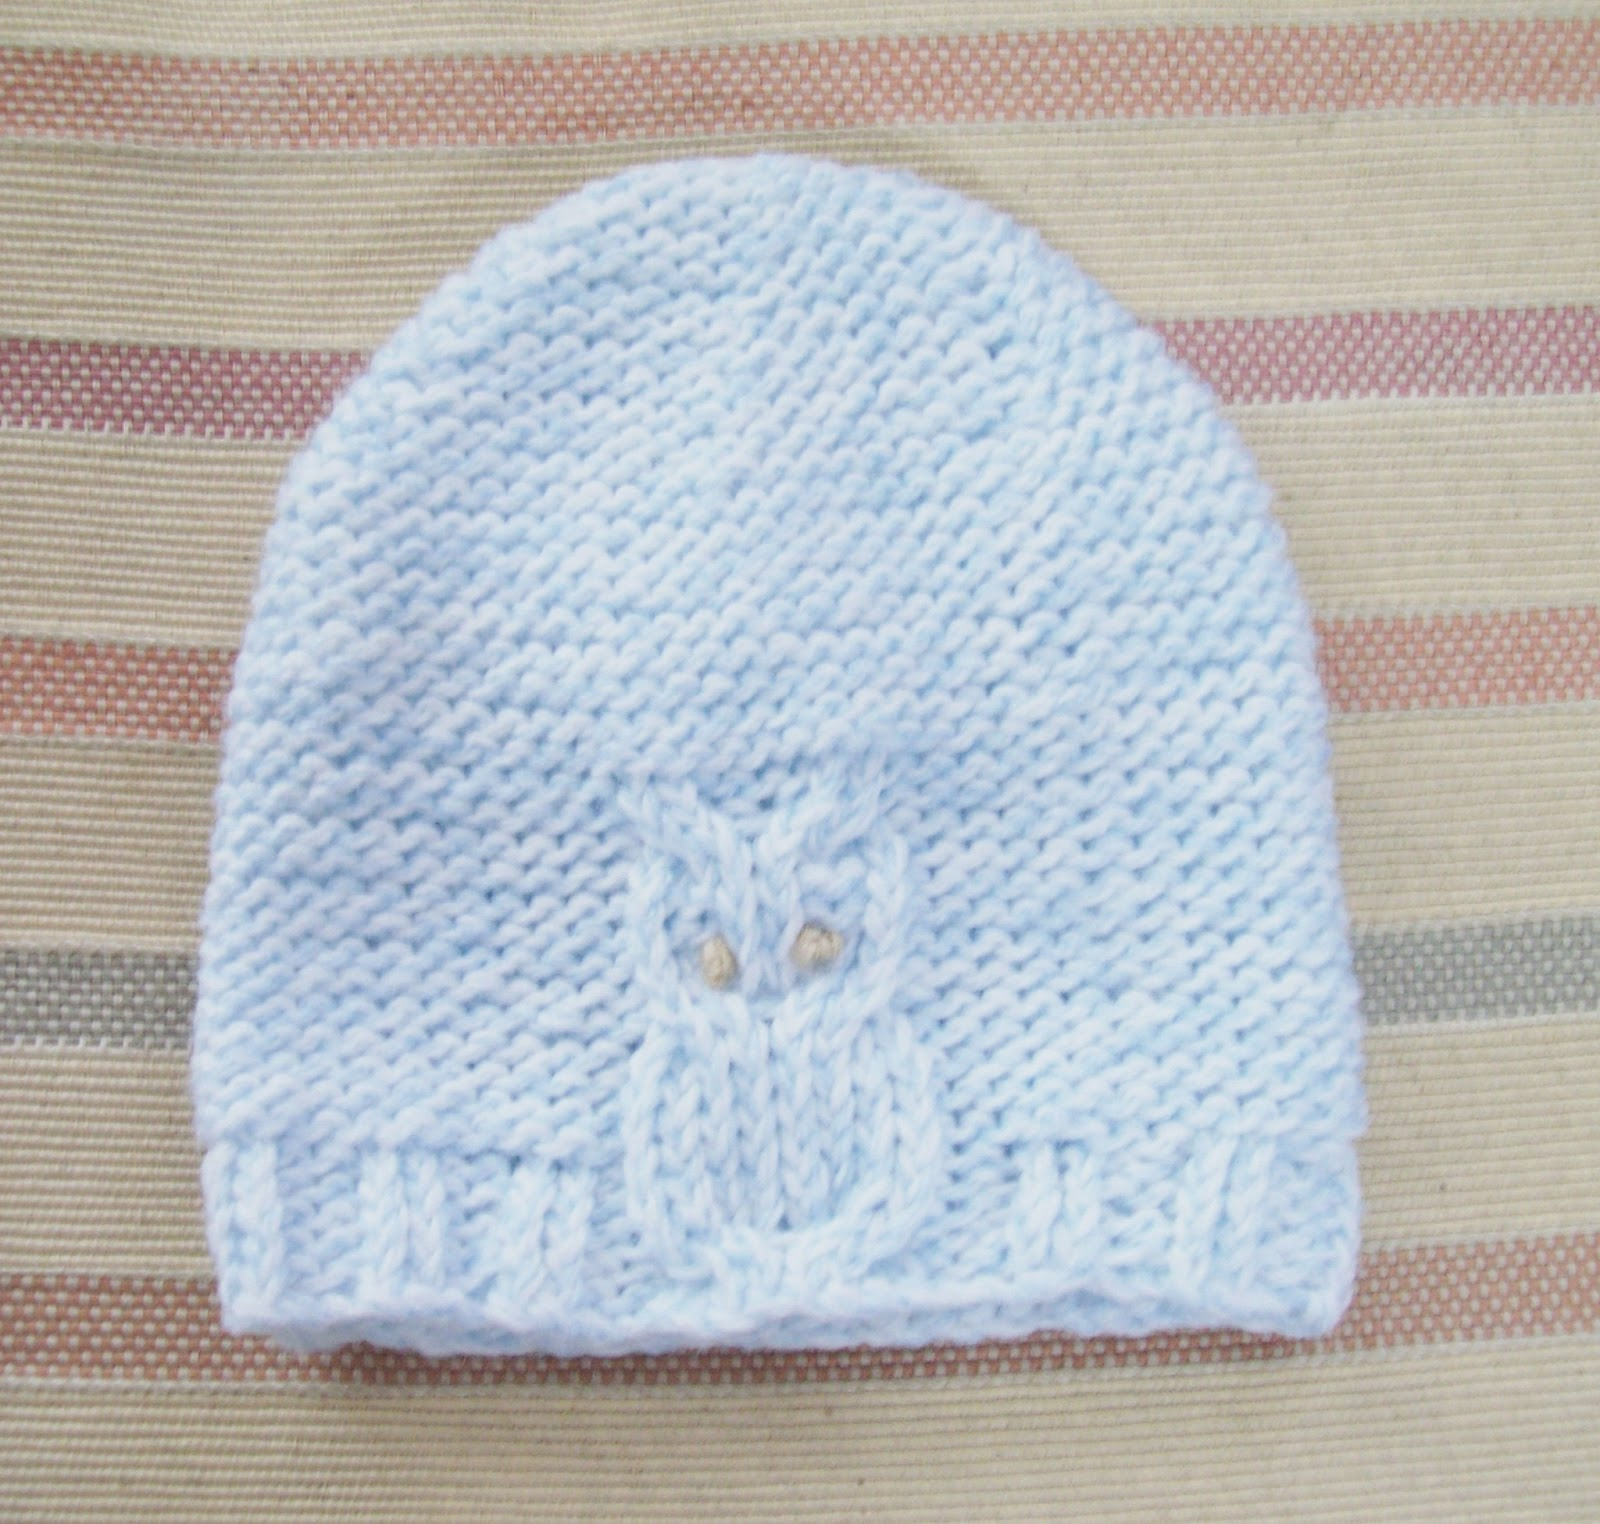 Crochet Pattern For Newborn Owl Hat : Sunflowers At Home: Owl Hat